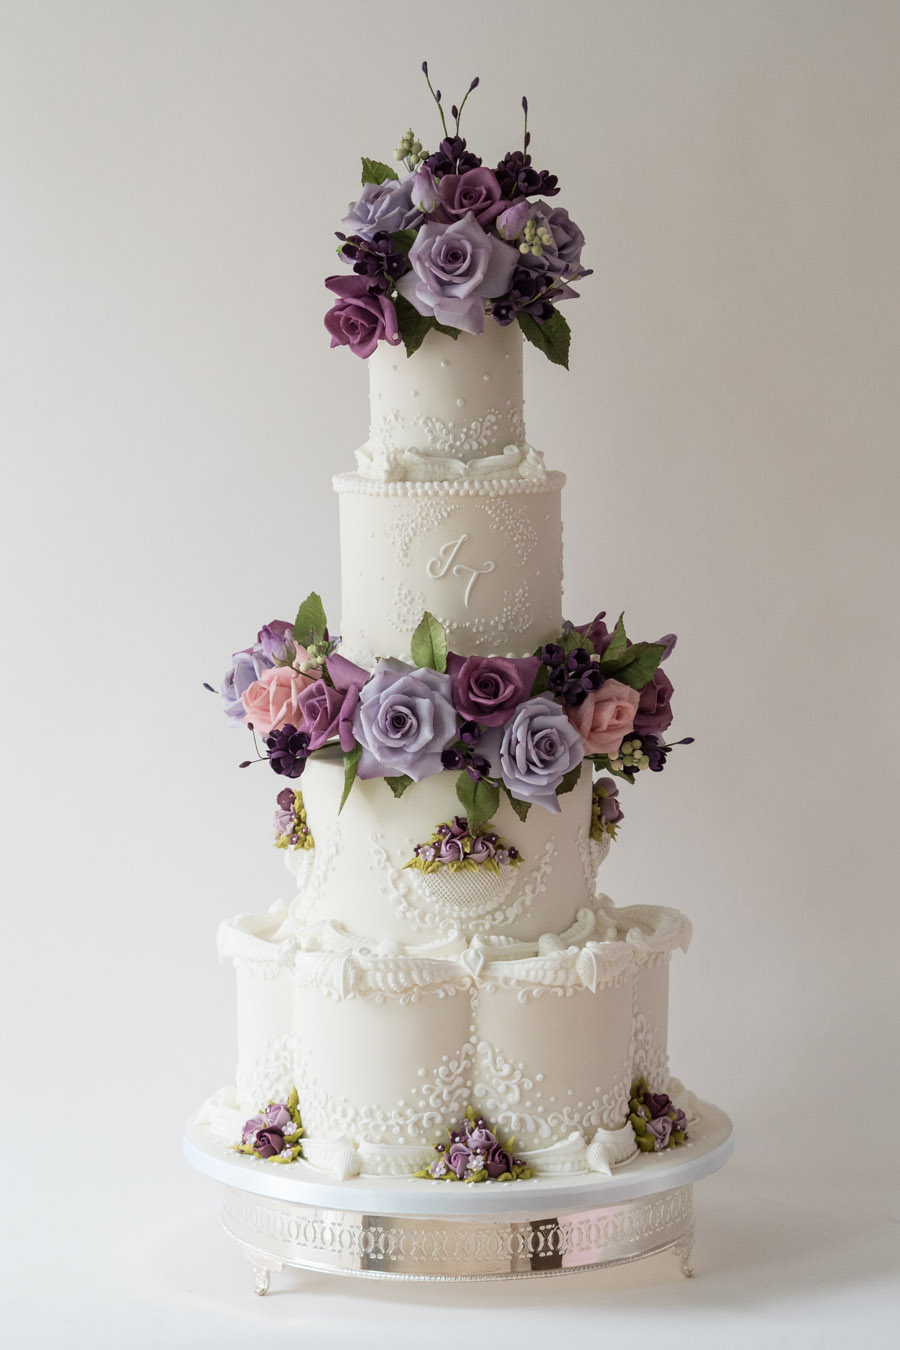 Beautiful wedding cakes by The Frostery - trends and ideas for 2019 (21)